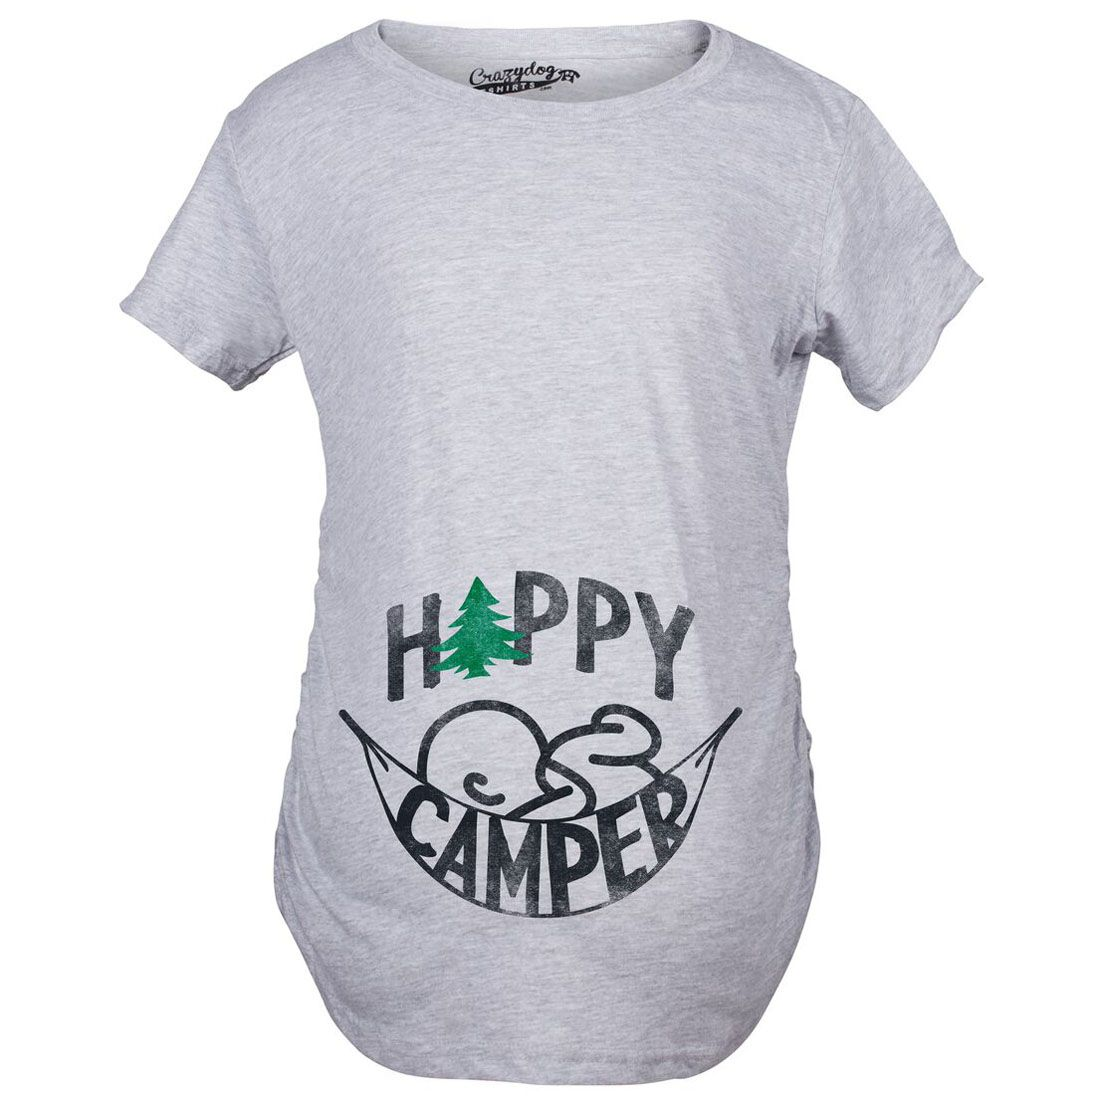 e747a660 Maternity Happy Camper Funny Camping Baby Bump Pregnancy Announcement T  shirt | CrazyDog Tshirts